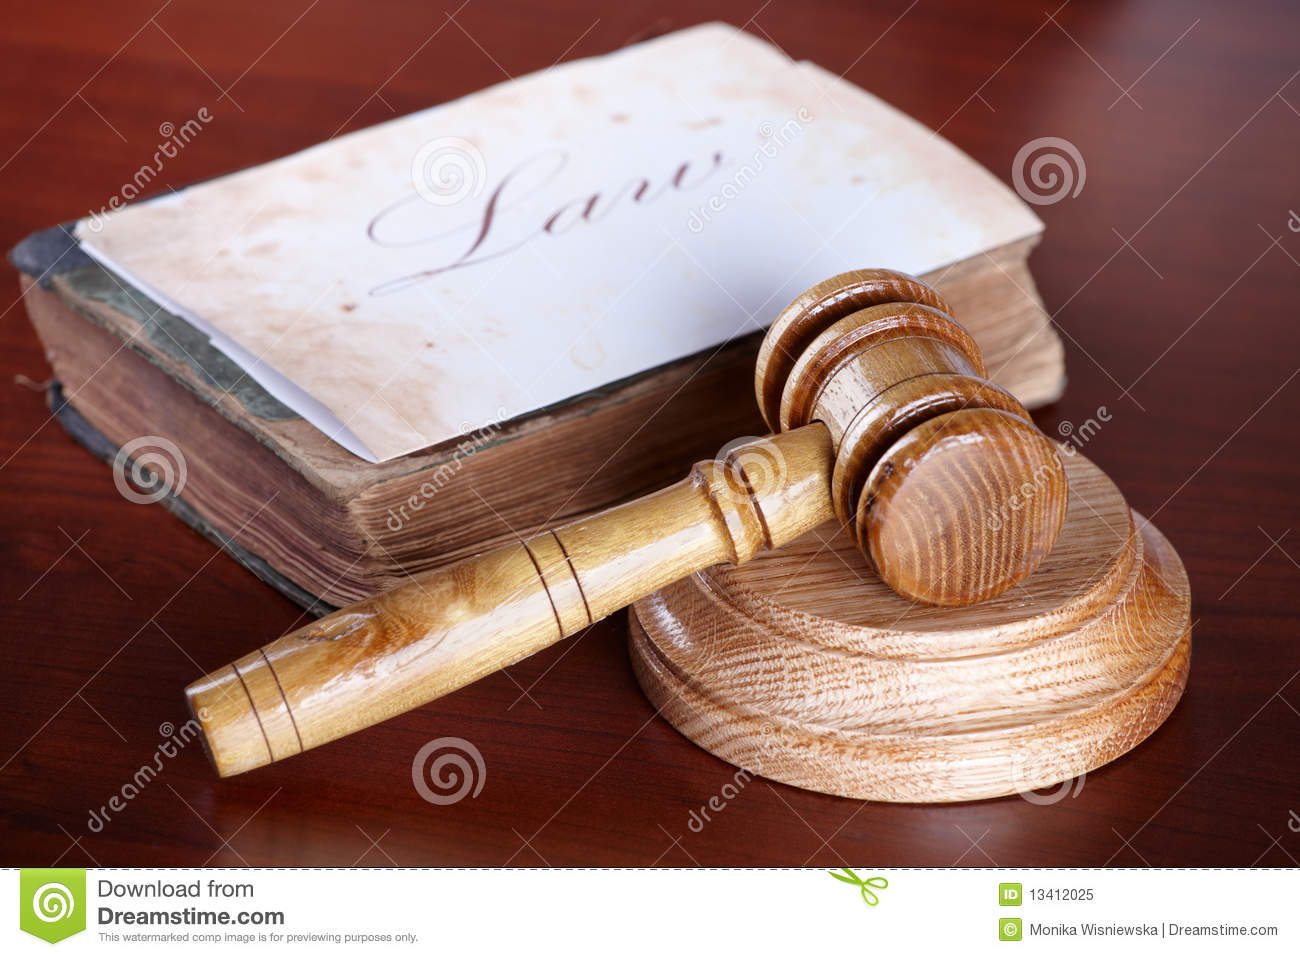 how to make a gavel